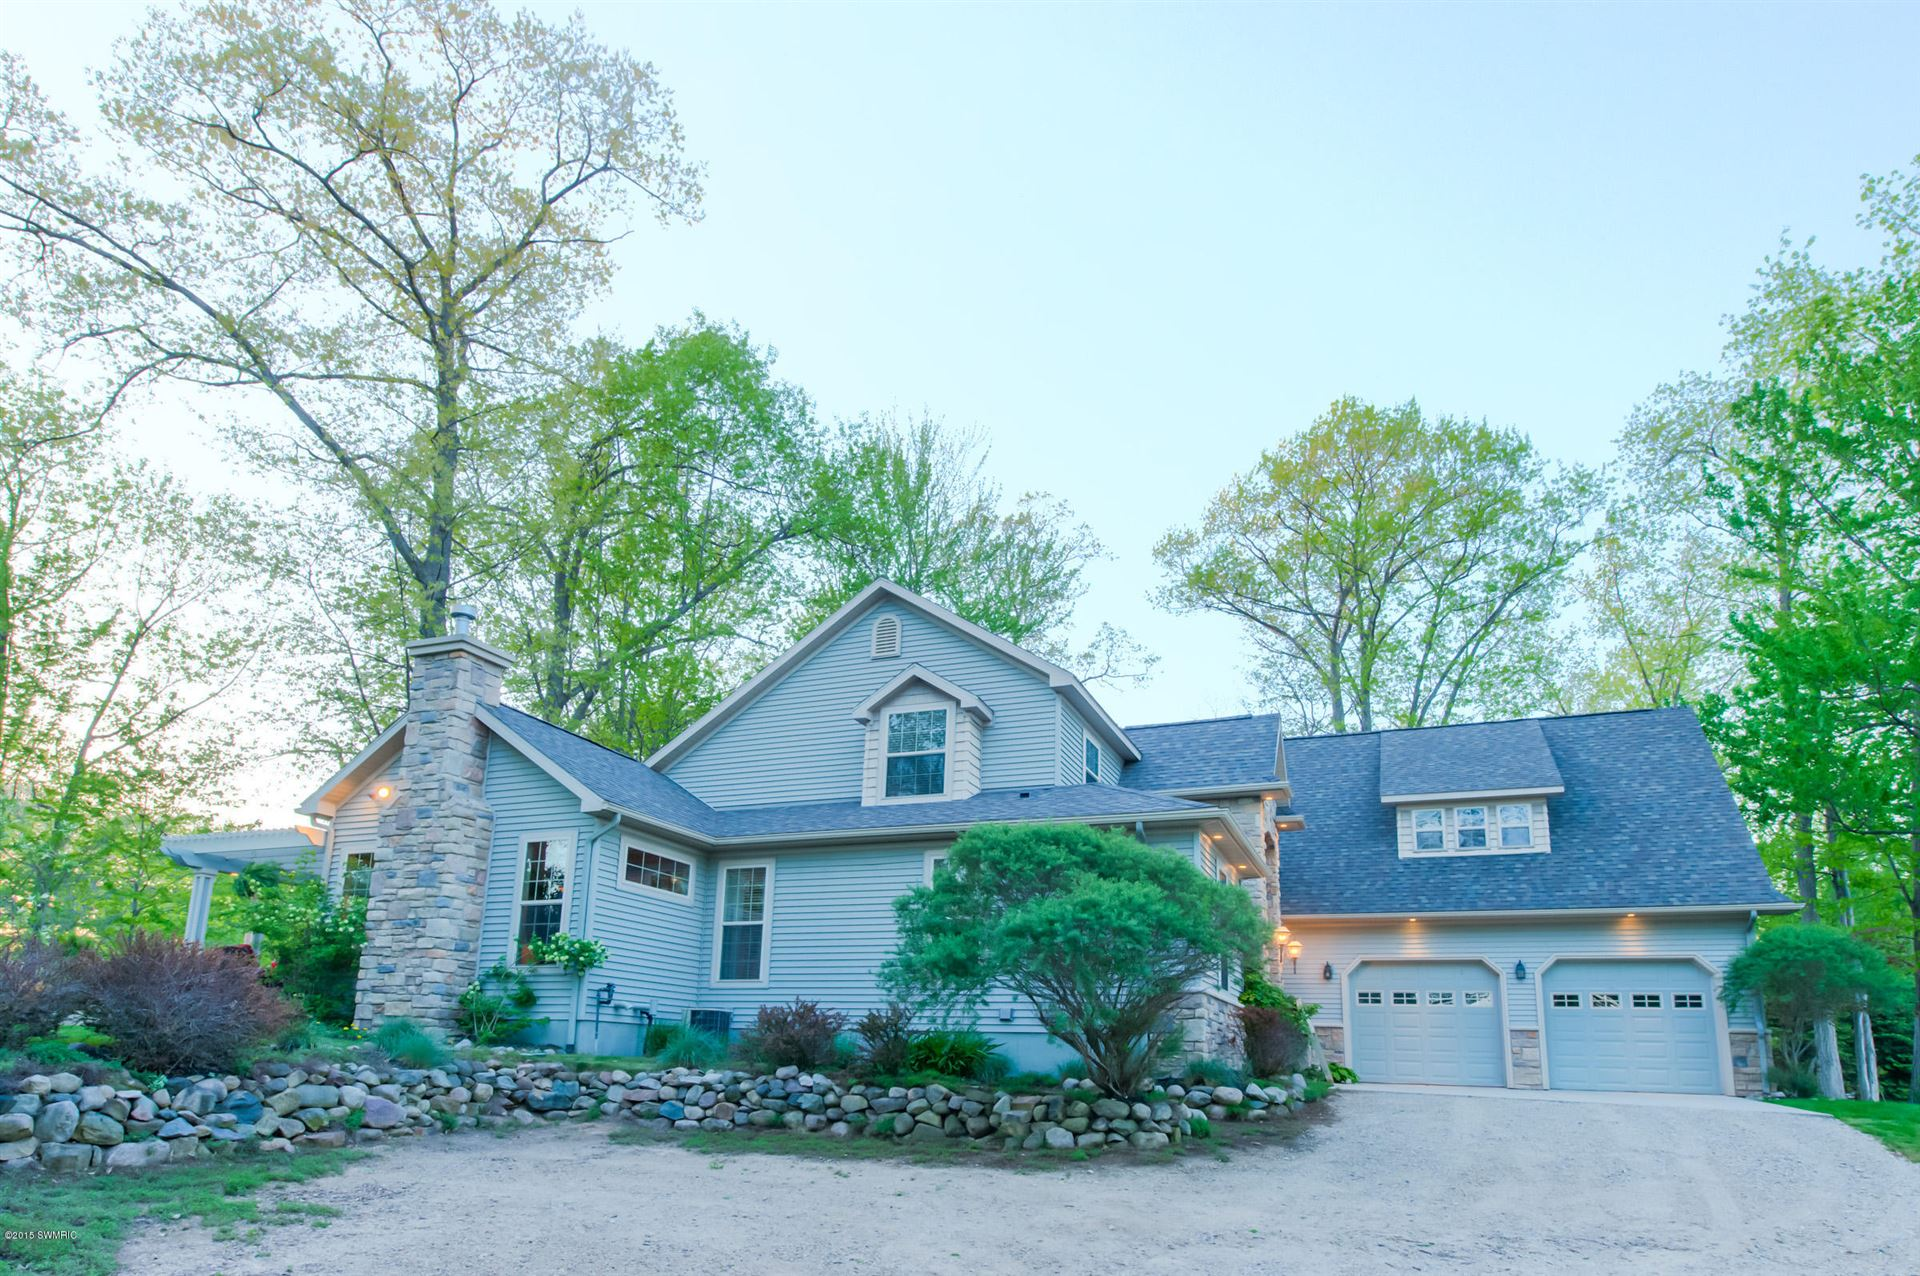 9559 St. Ives Drive, Canadian Lakes, MI 49346 - MLS#: 21010911